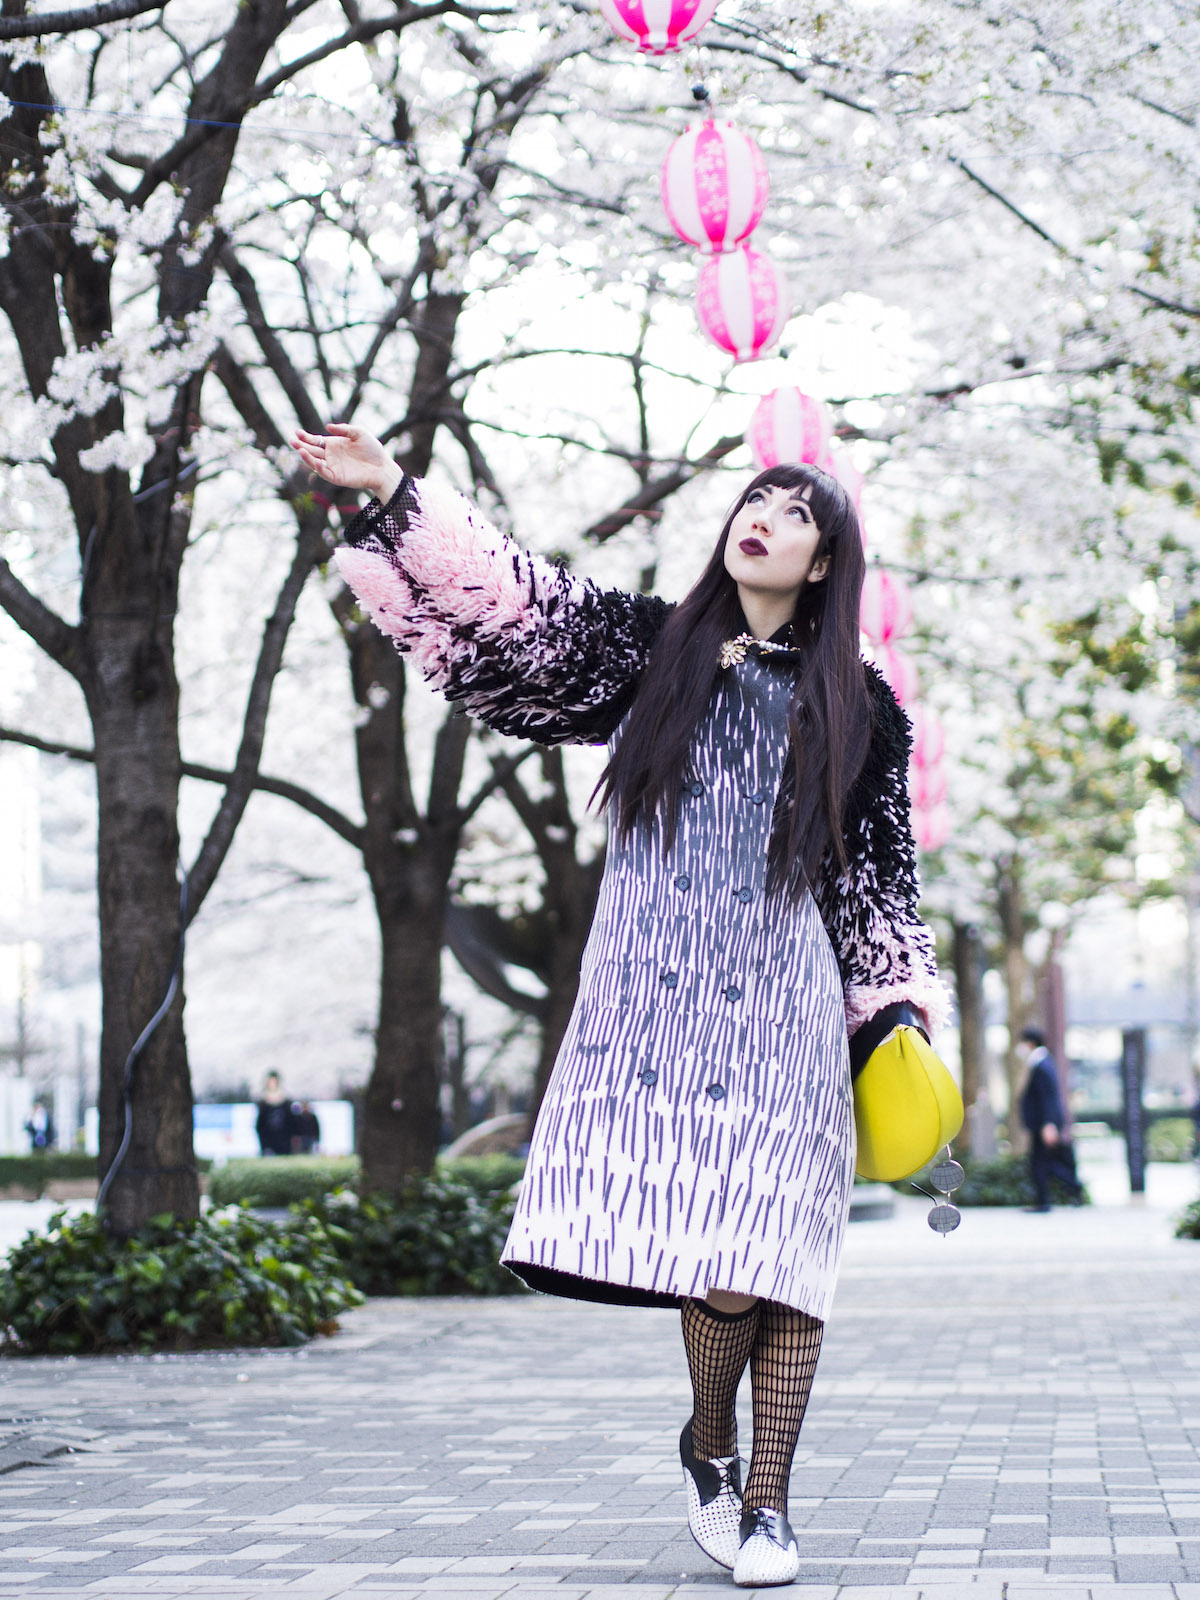 coat by viktoriya veselova that looks like a blanket of cherry blossoms